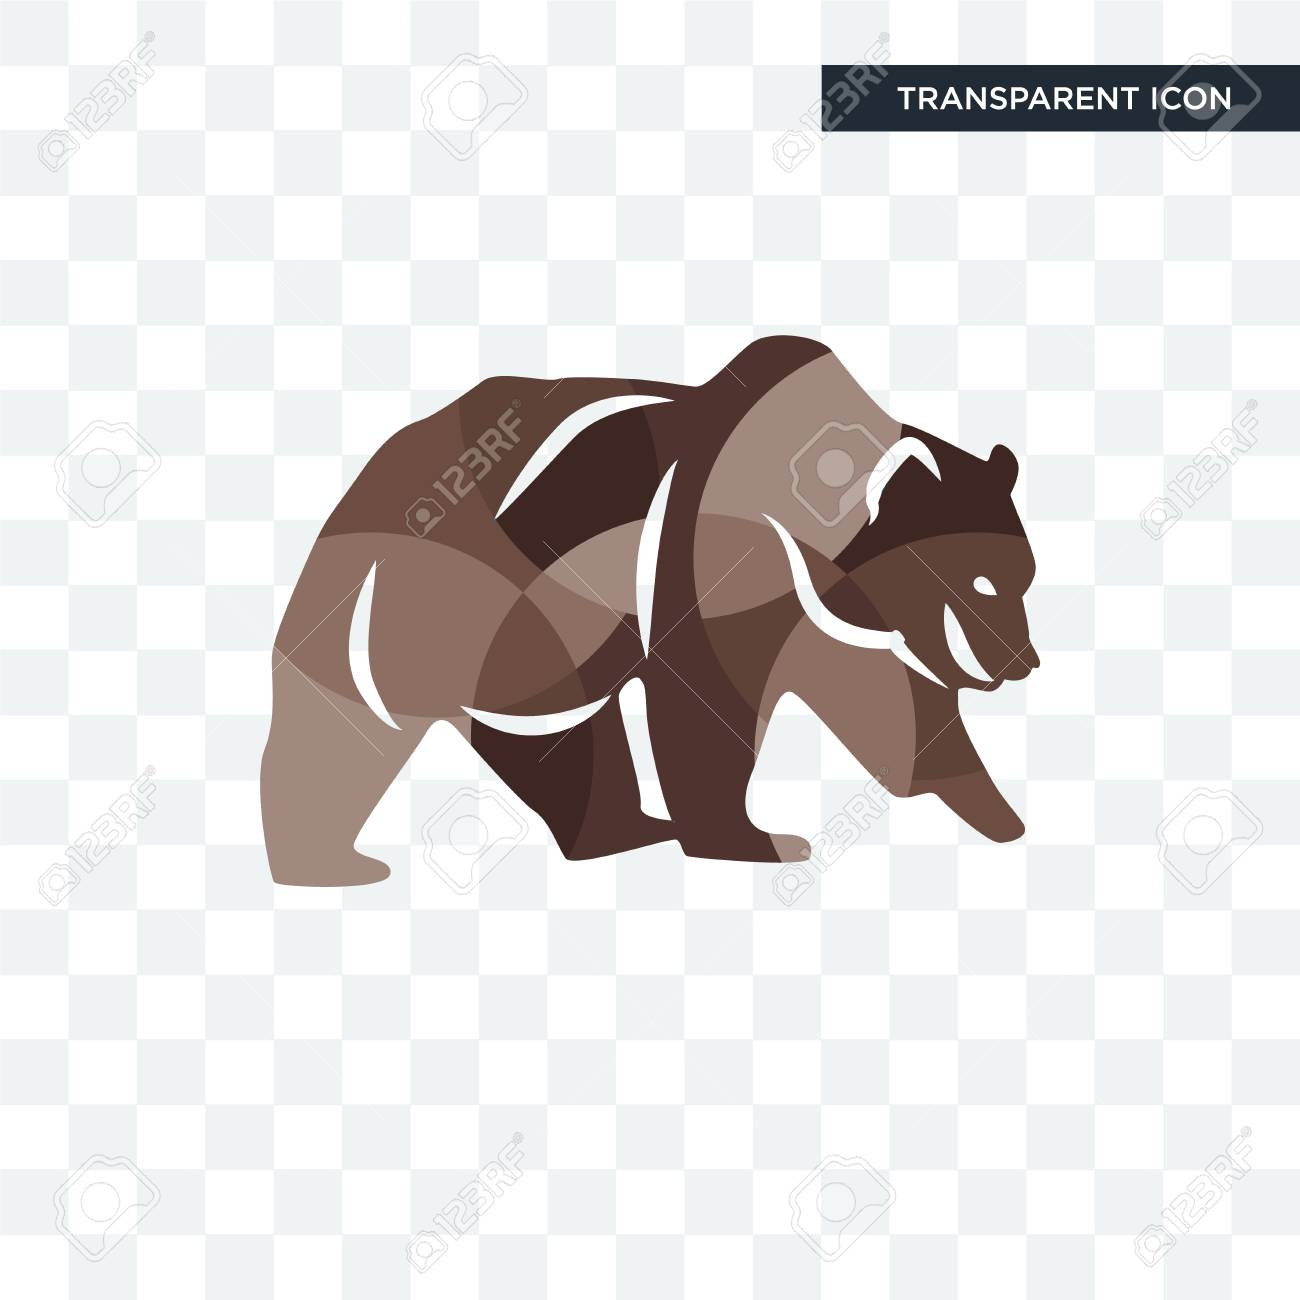 grizzly bear vector icon isolated on transparent background royalty free cliparts vectors and stock illustration image 108262238 grizzly bear vector icon isolated on transparent background